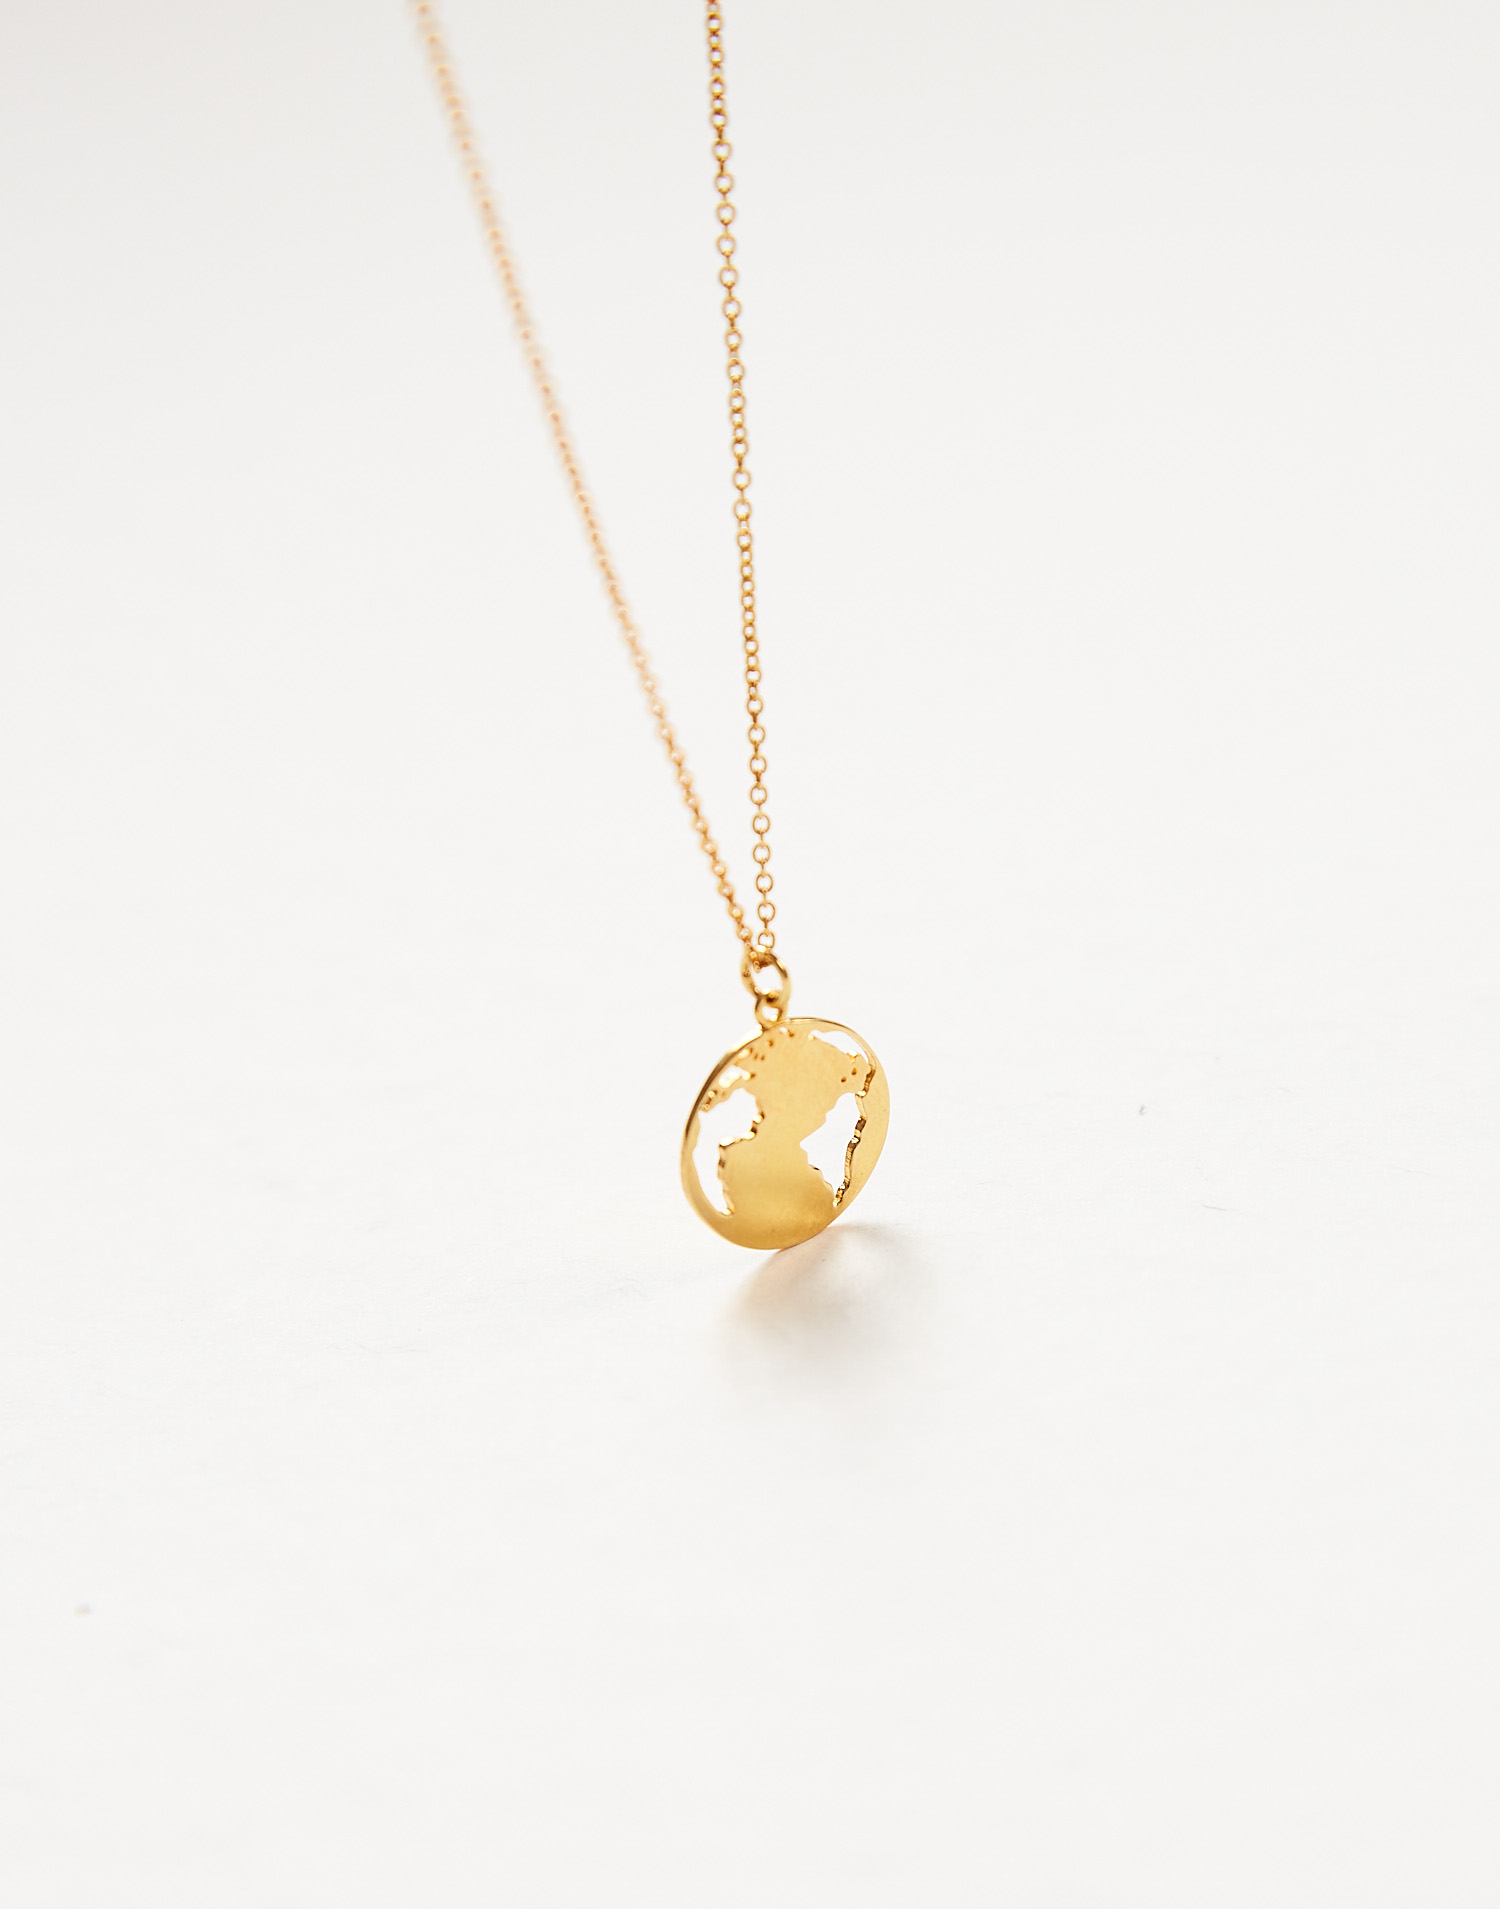 Gold plated world medal necklace